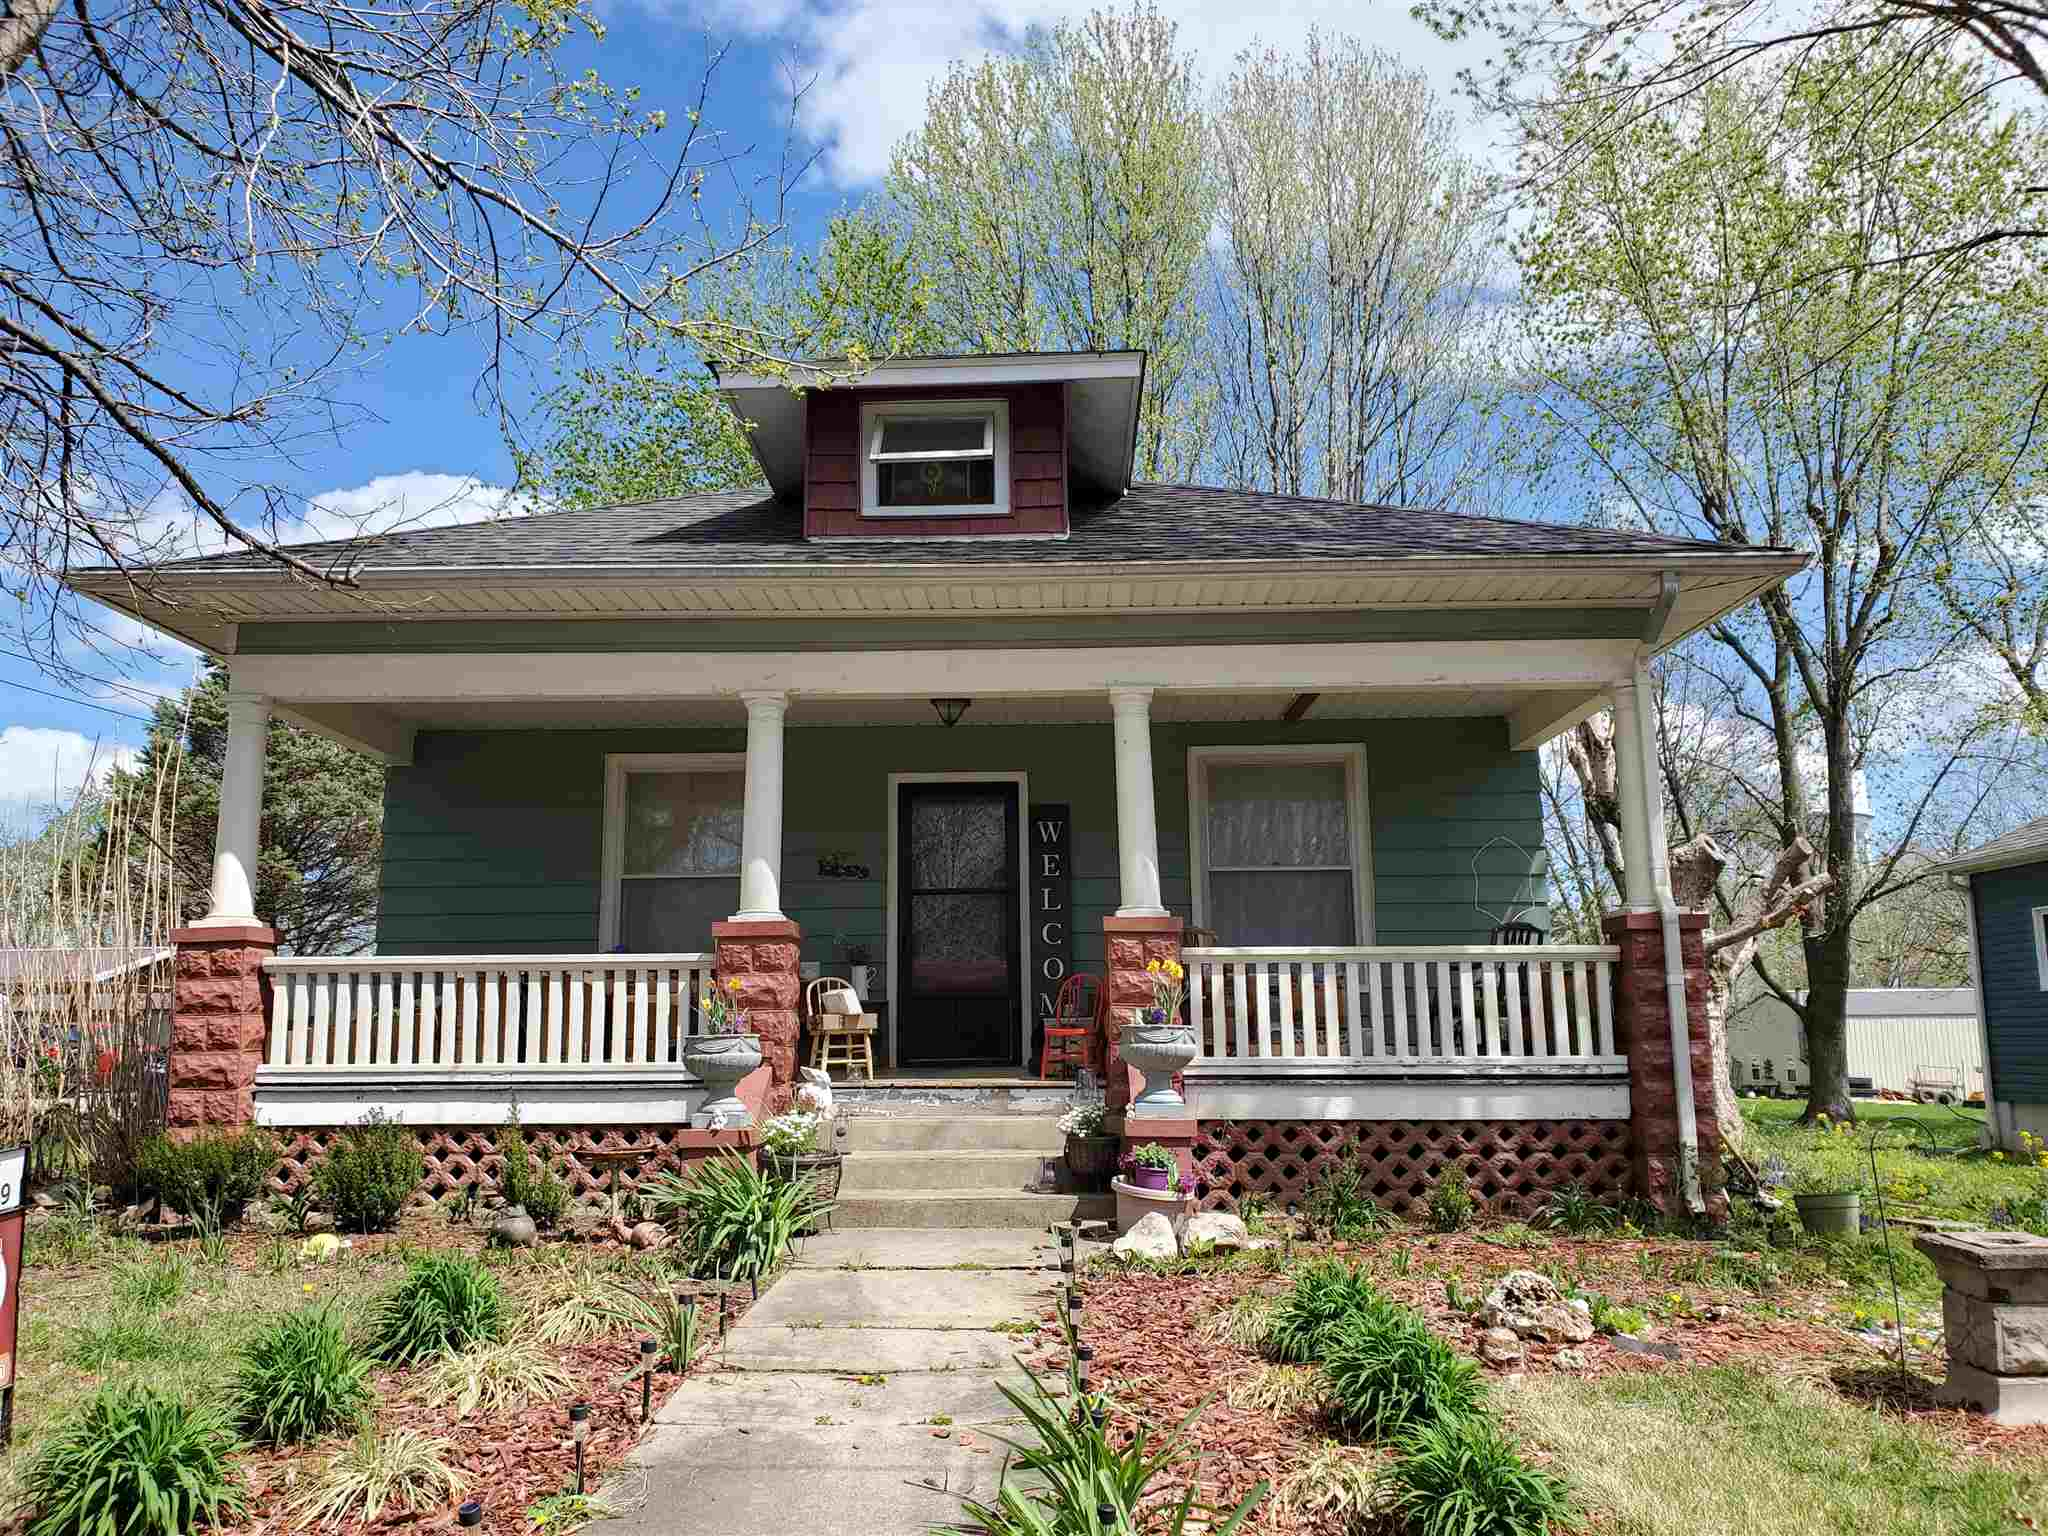 402 S GARFIELD Property Photo - Steeleville, IL real estate listing